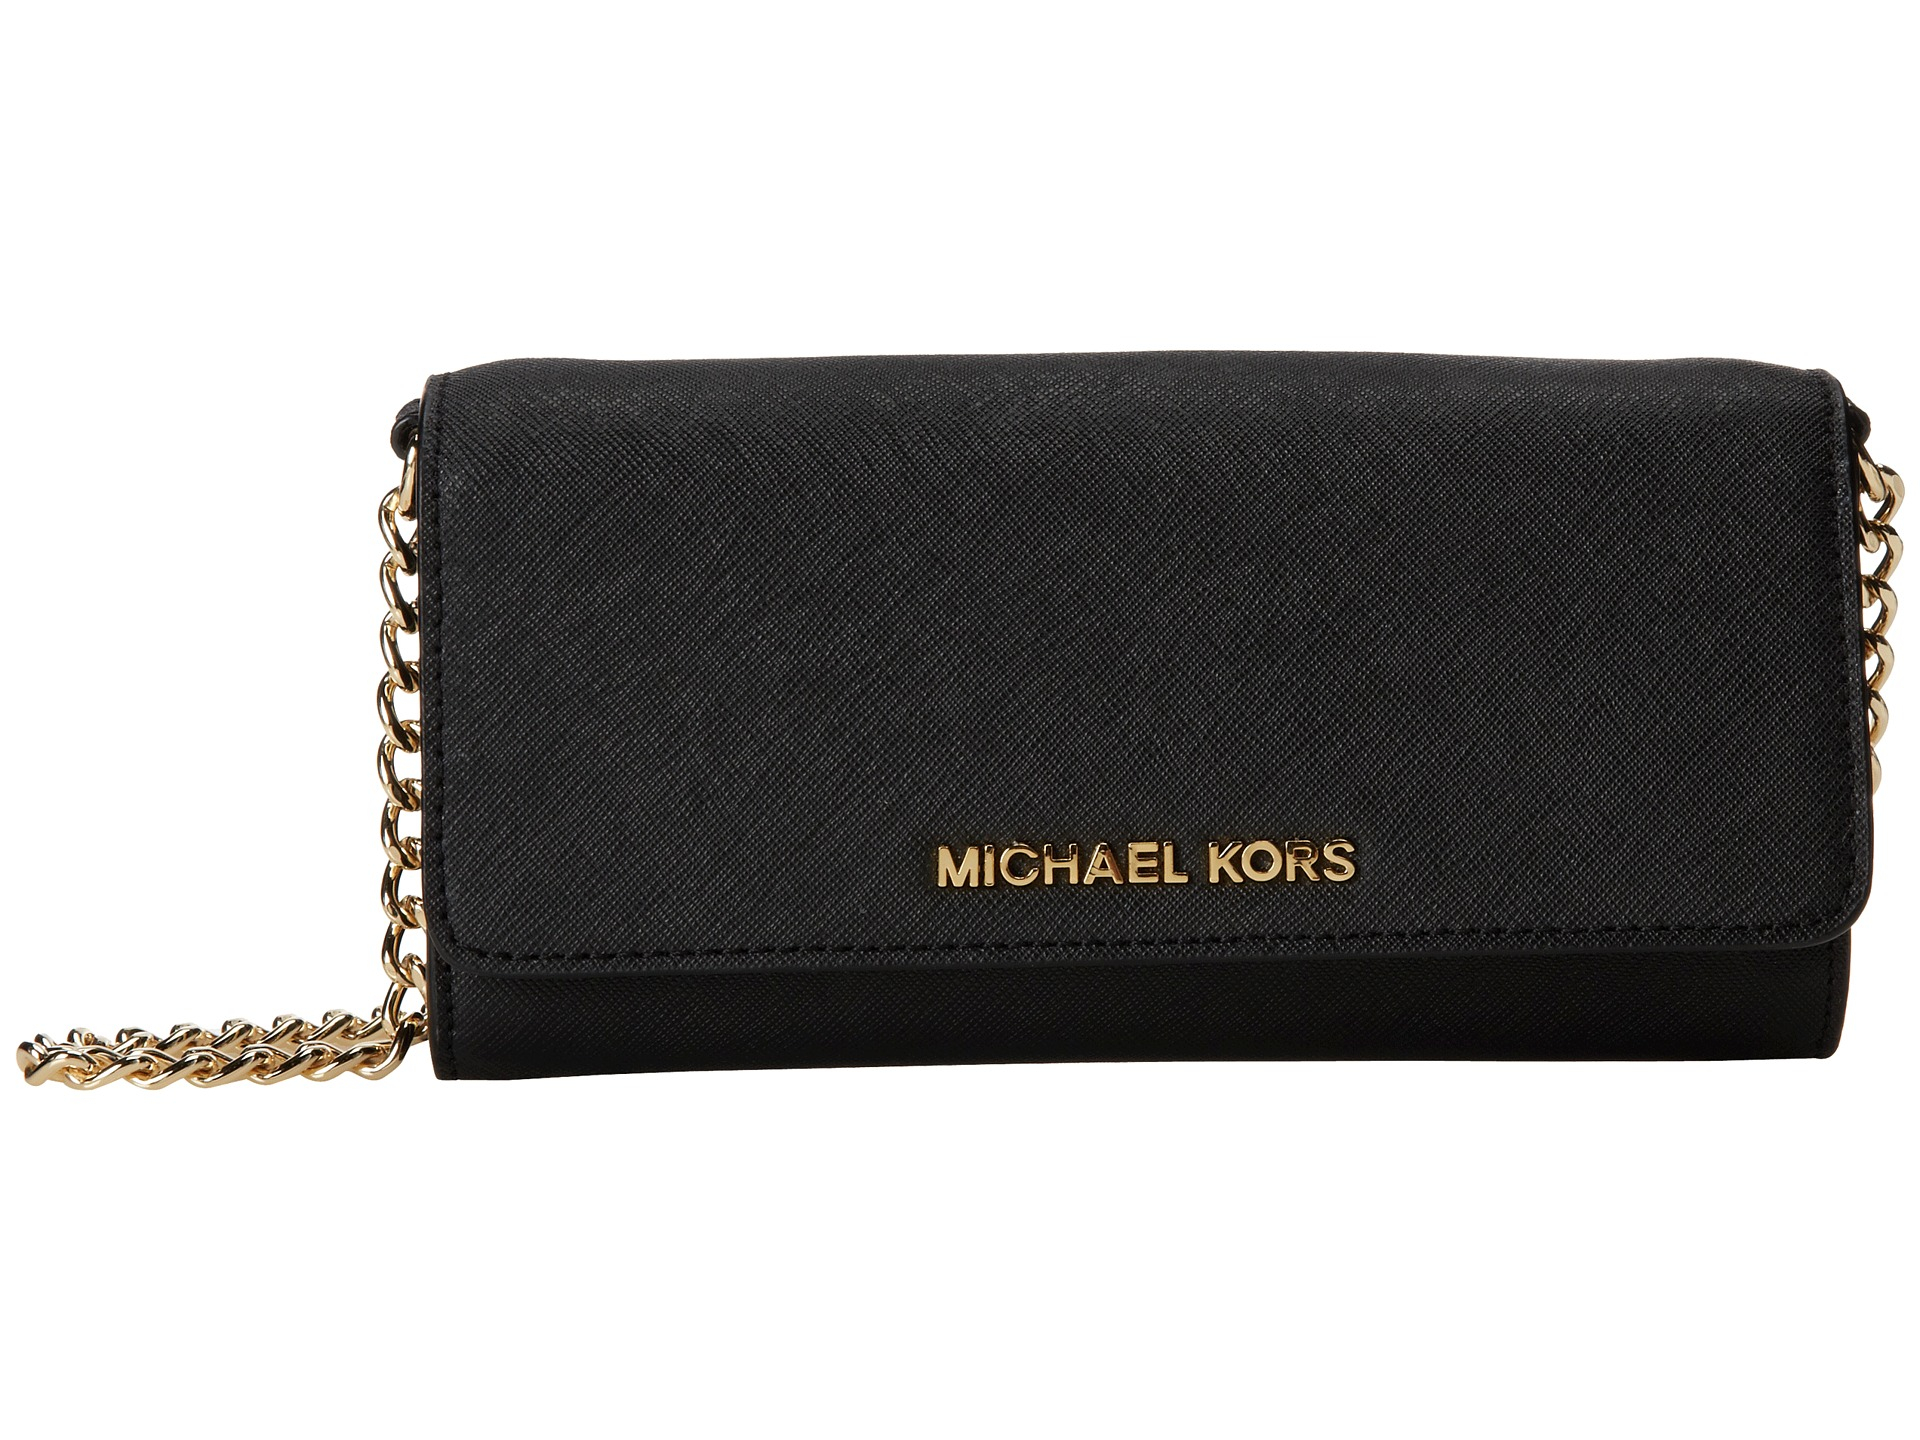 80da26b12d85 Michael Kors Wallet On A Chain. MICHAEL Michael Kors Jet Set Travel ...